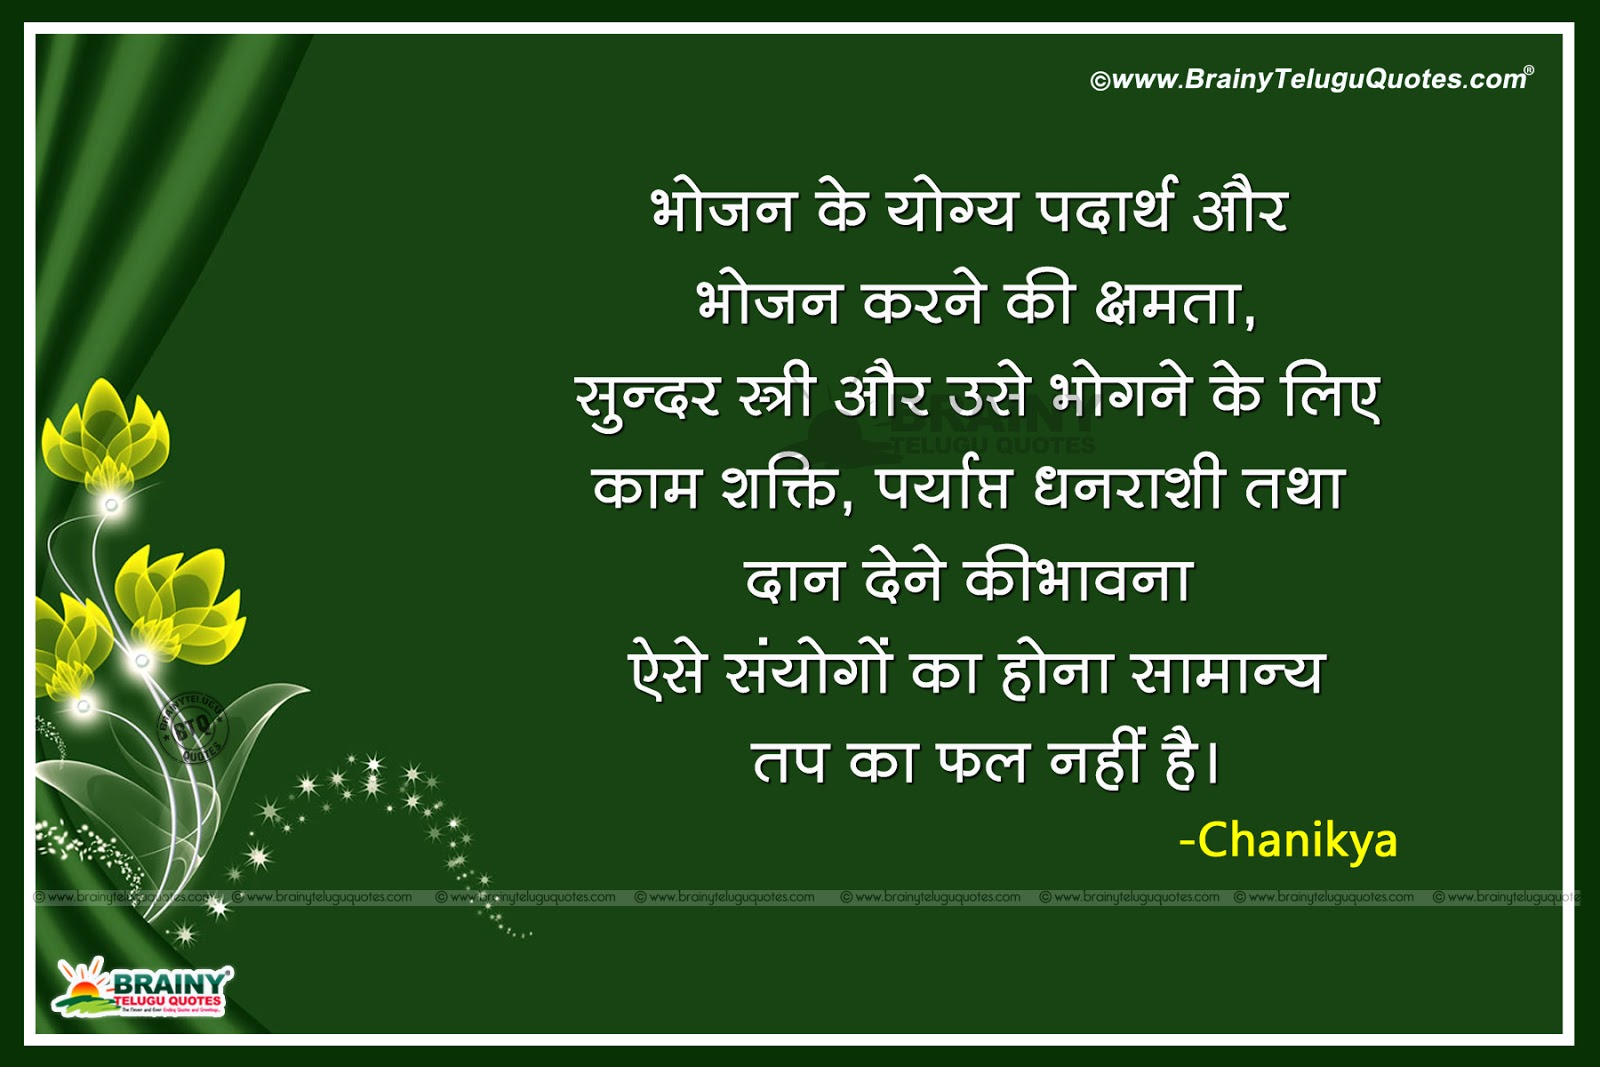 Chanakya Neeti Pdf In Hindi Free Download